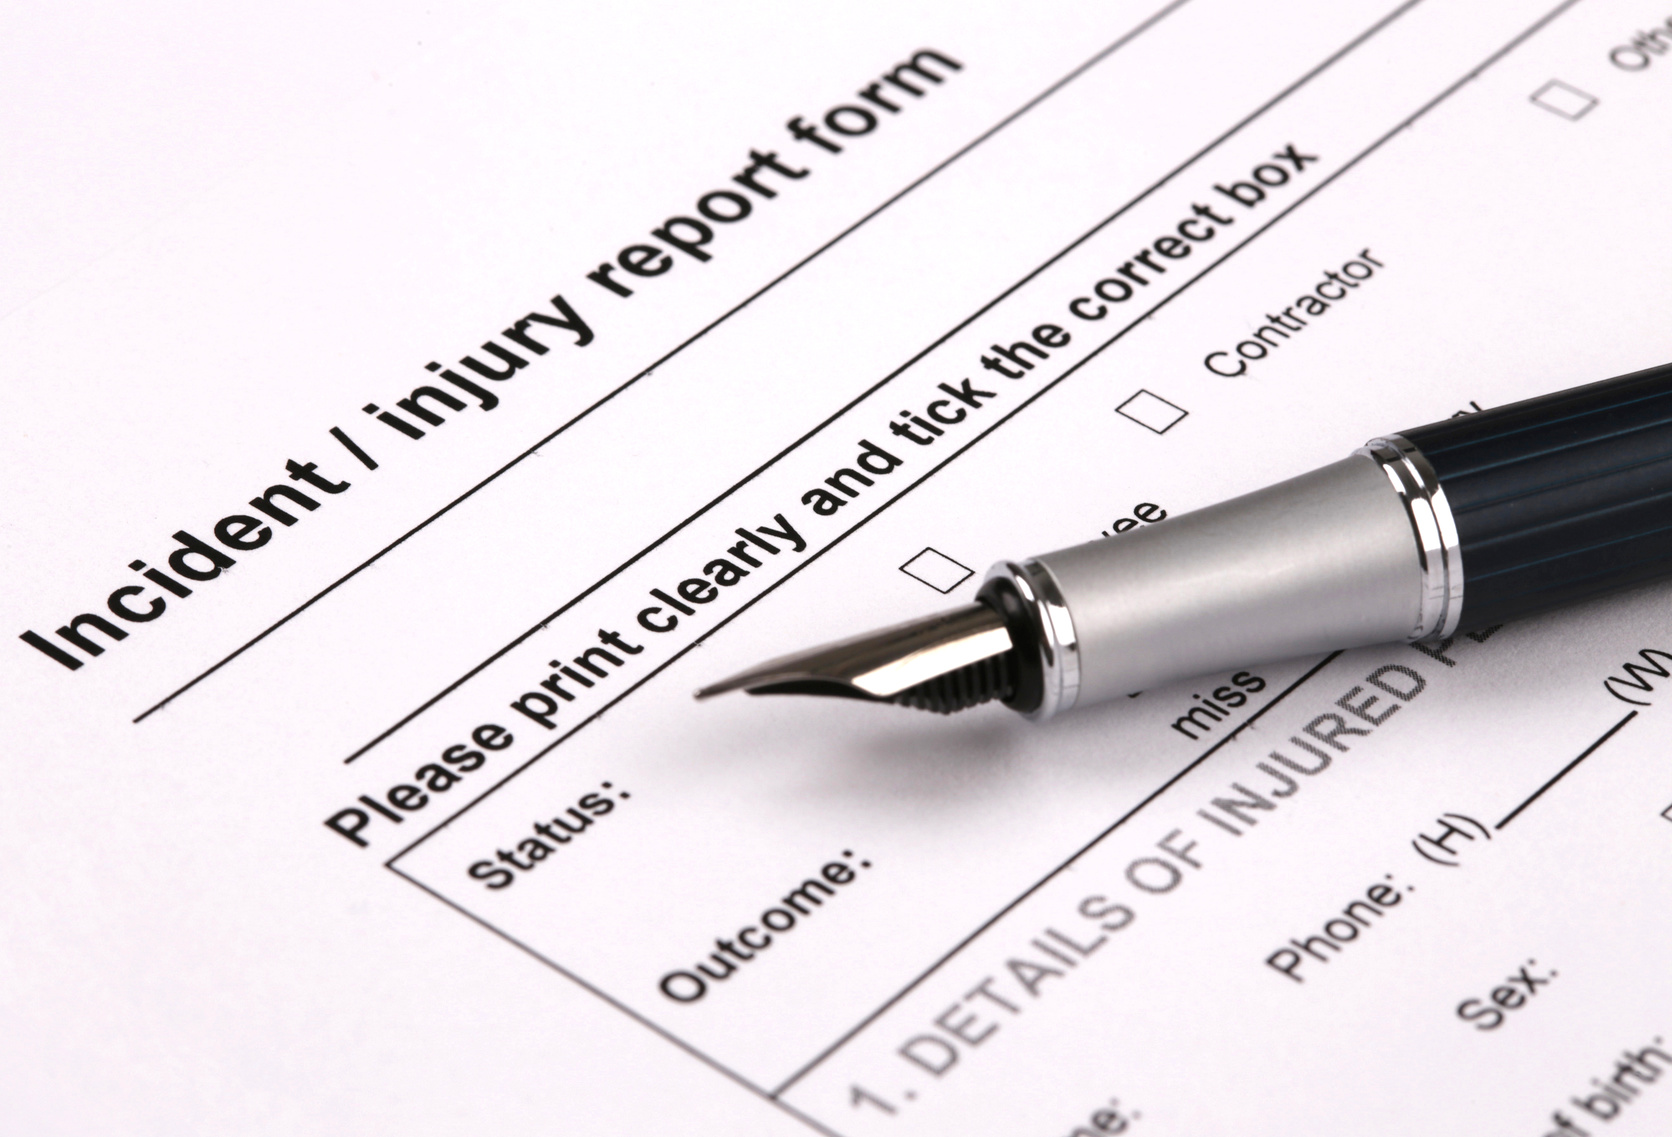 Insurance forms work compensation case work injury aaa pt.jpg